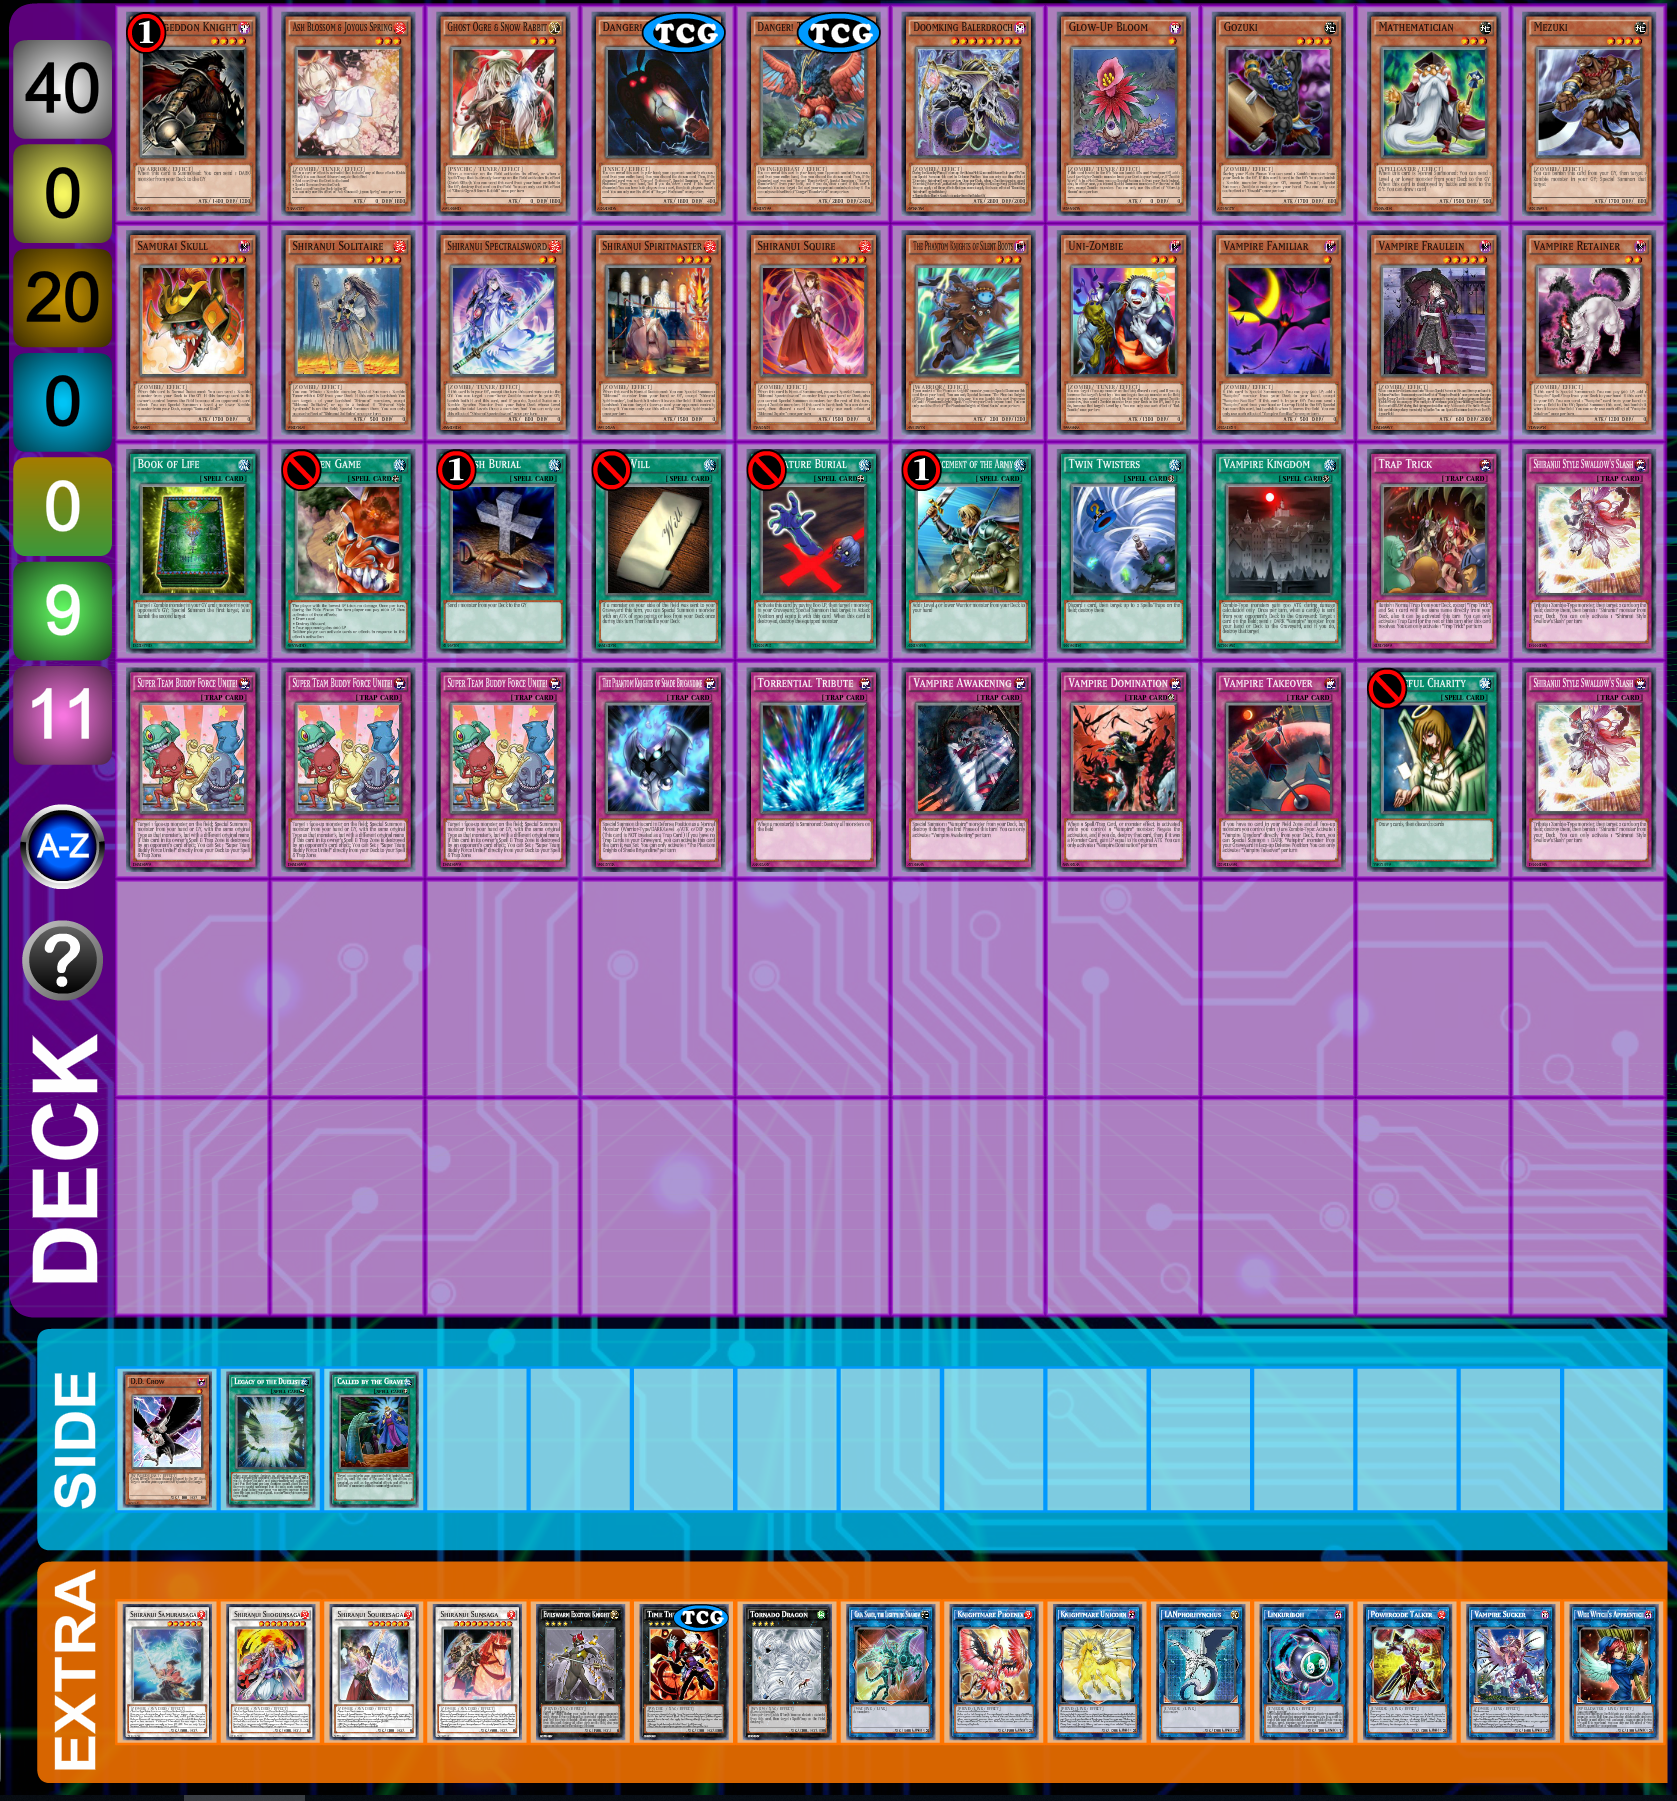 Trinity Format - February 2019 Top Deck Profiles - YGOPRODECK